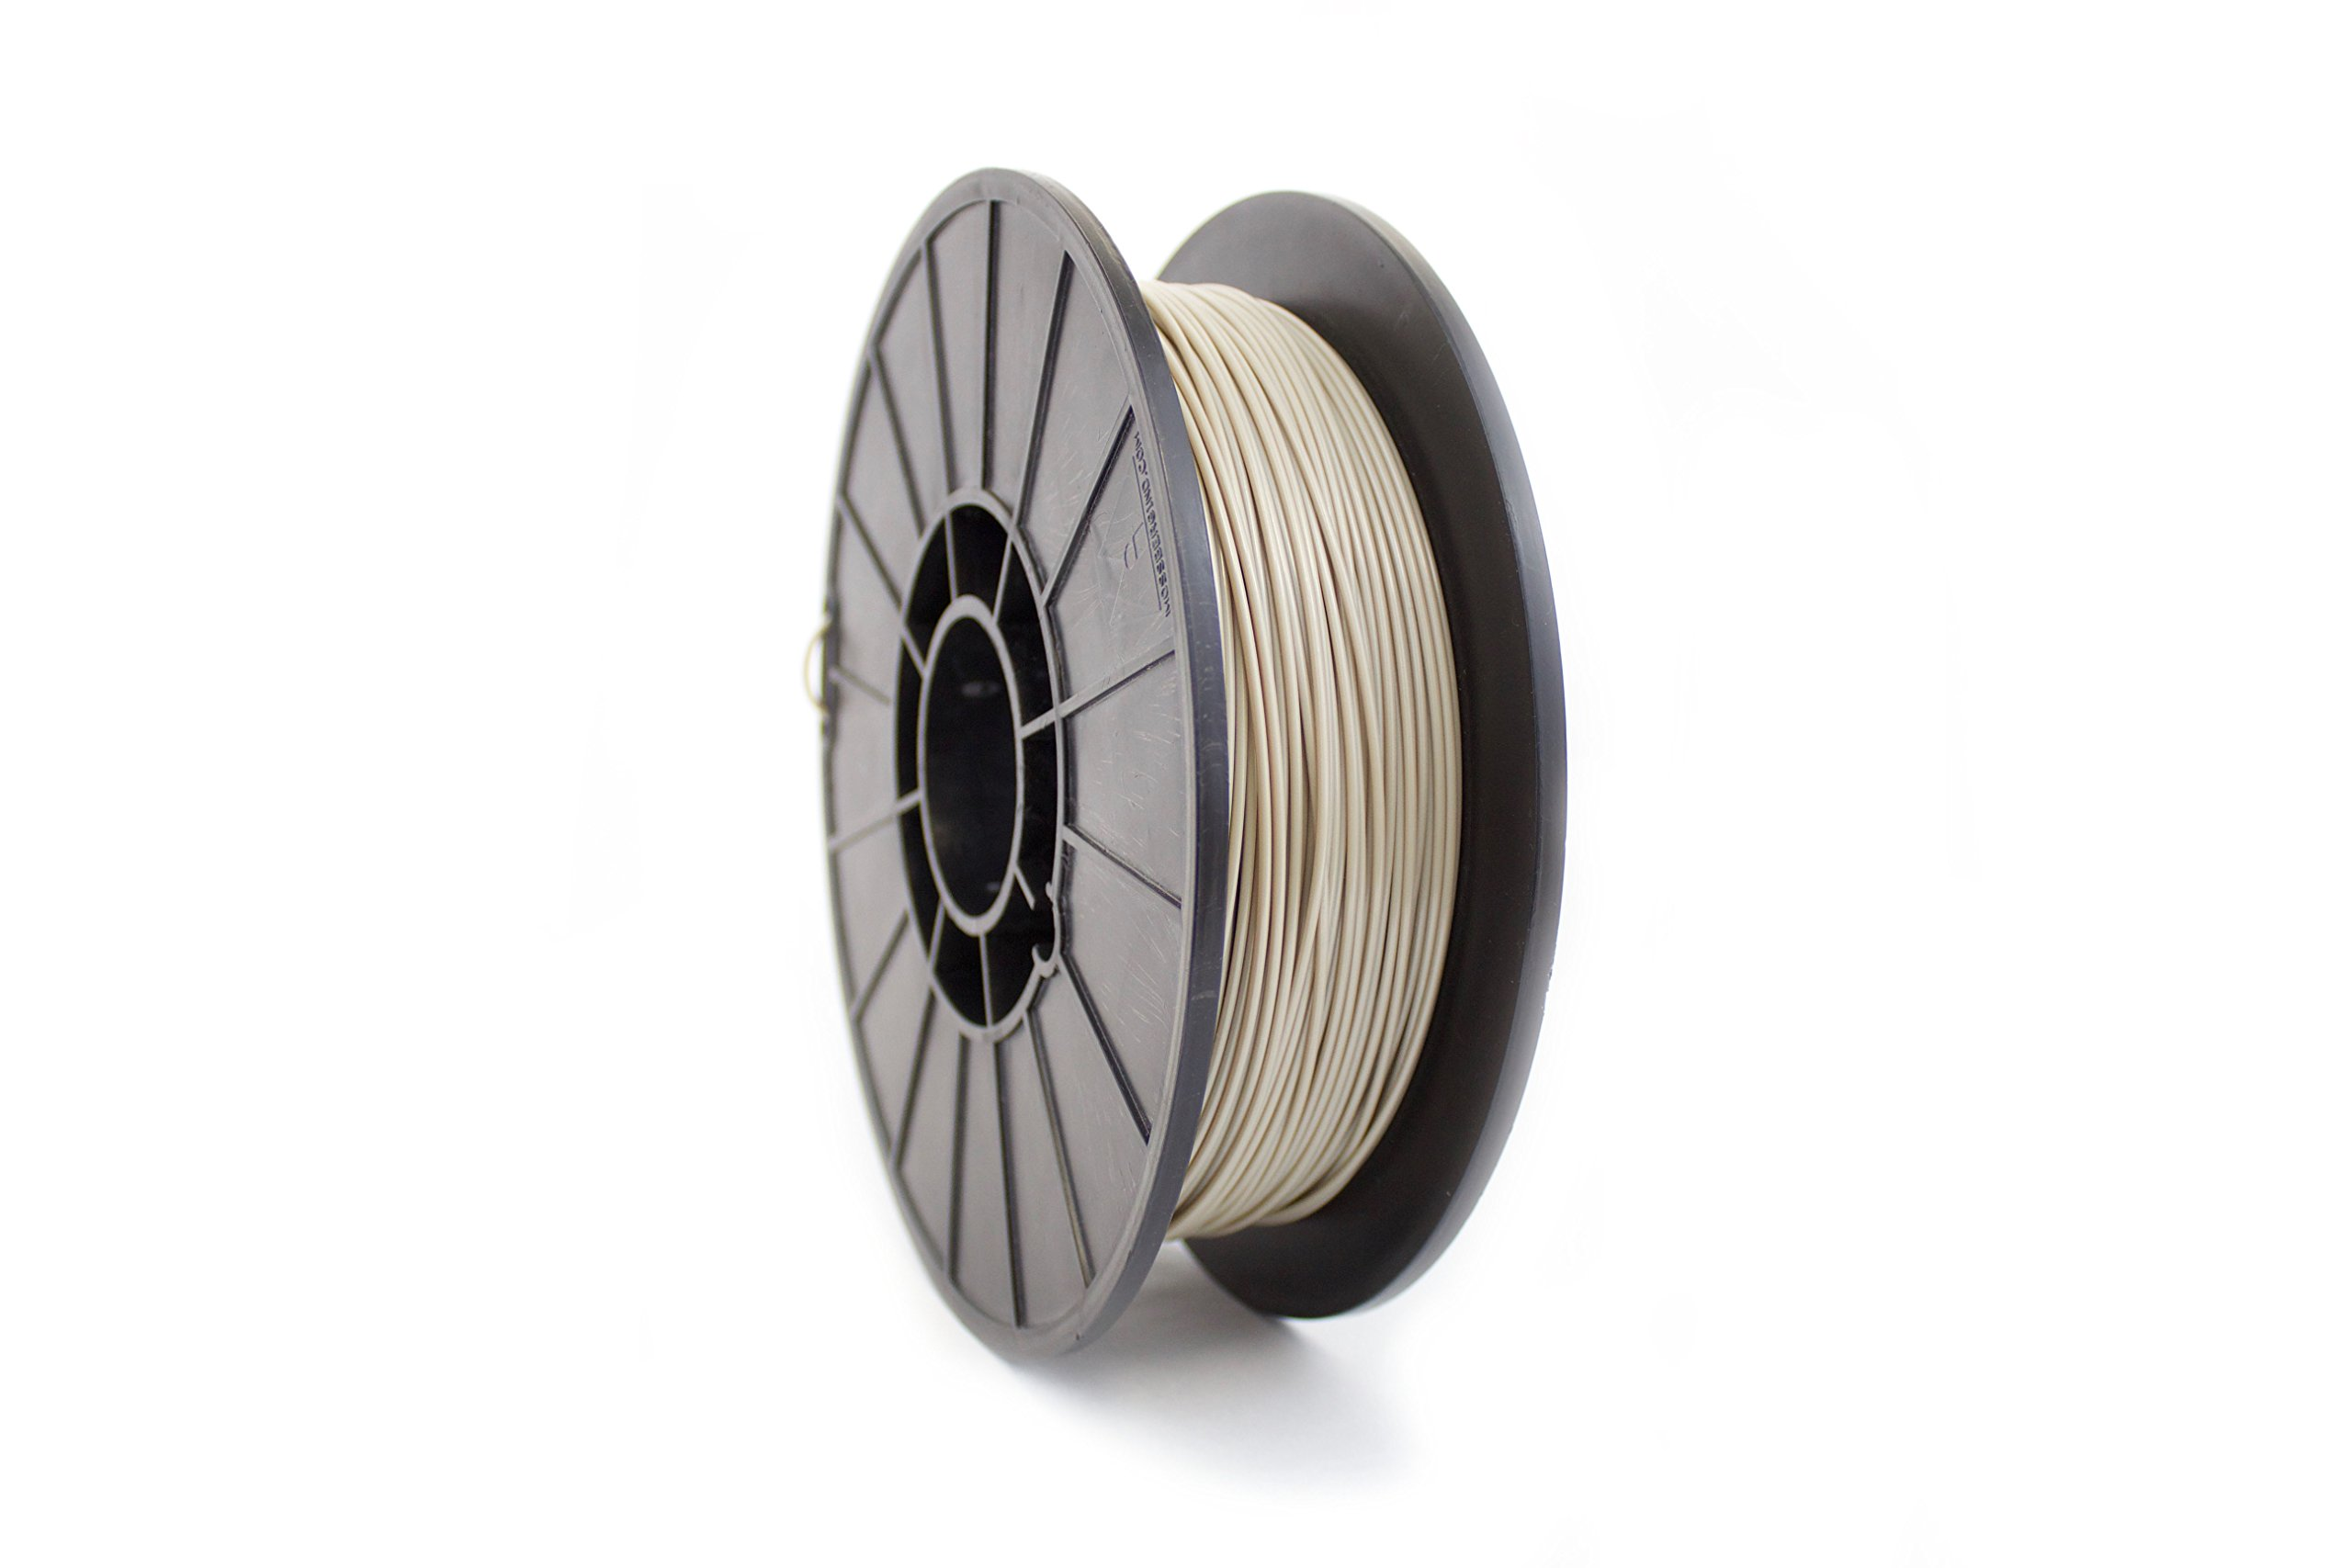 Essentium PEEK High Temp Exotic Filament 2.85 mm- Extremely Strong, Shockingly Heat Resistant, Chemical Resistant 3D Printing Filament, High Heat Deflection - Natural - 2 KG